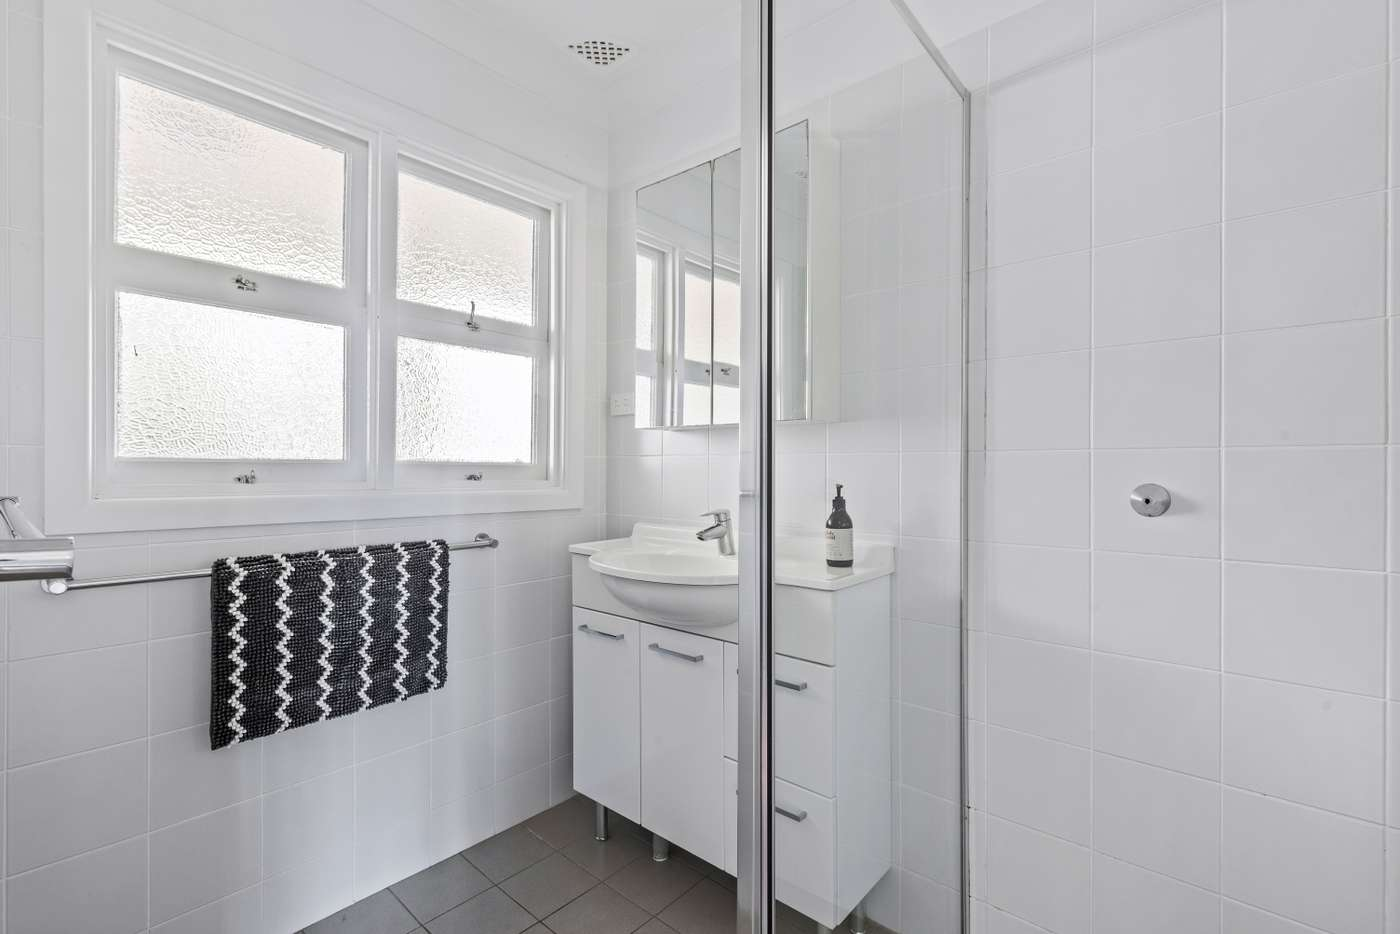 Seventh view of Homely house listing, 20 Donlan Road, Mollymook NSW 2539